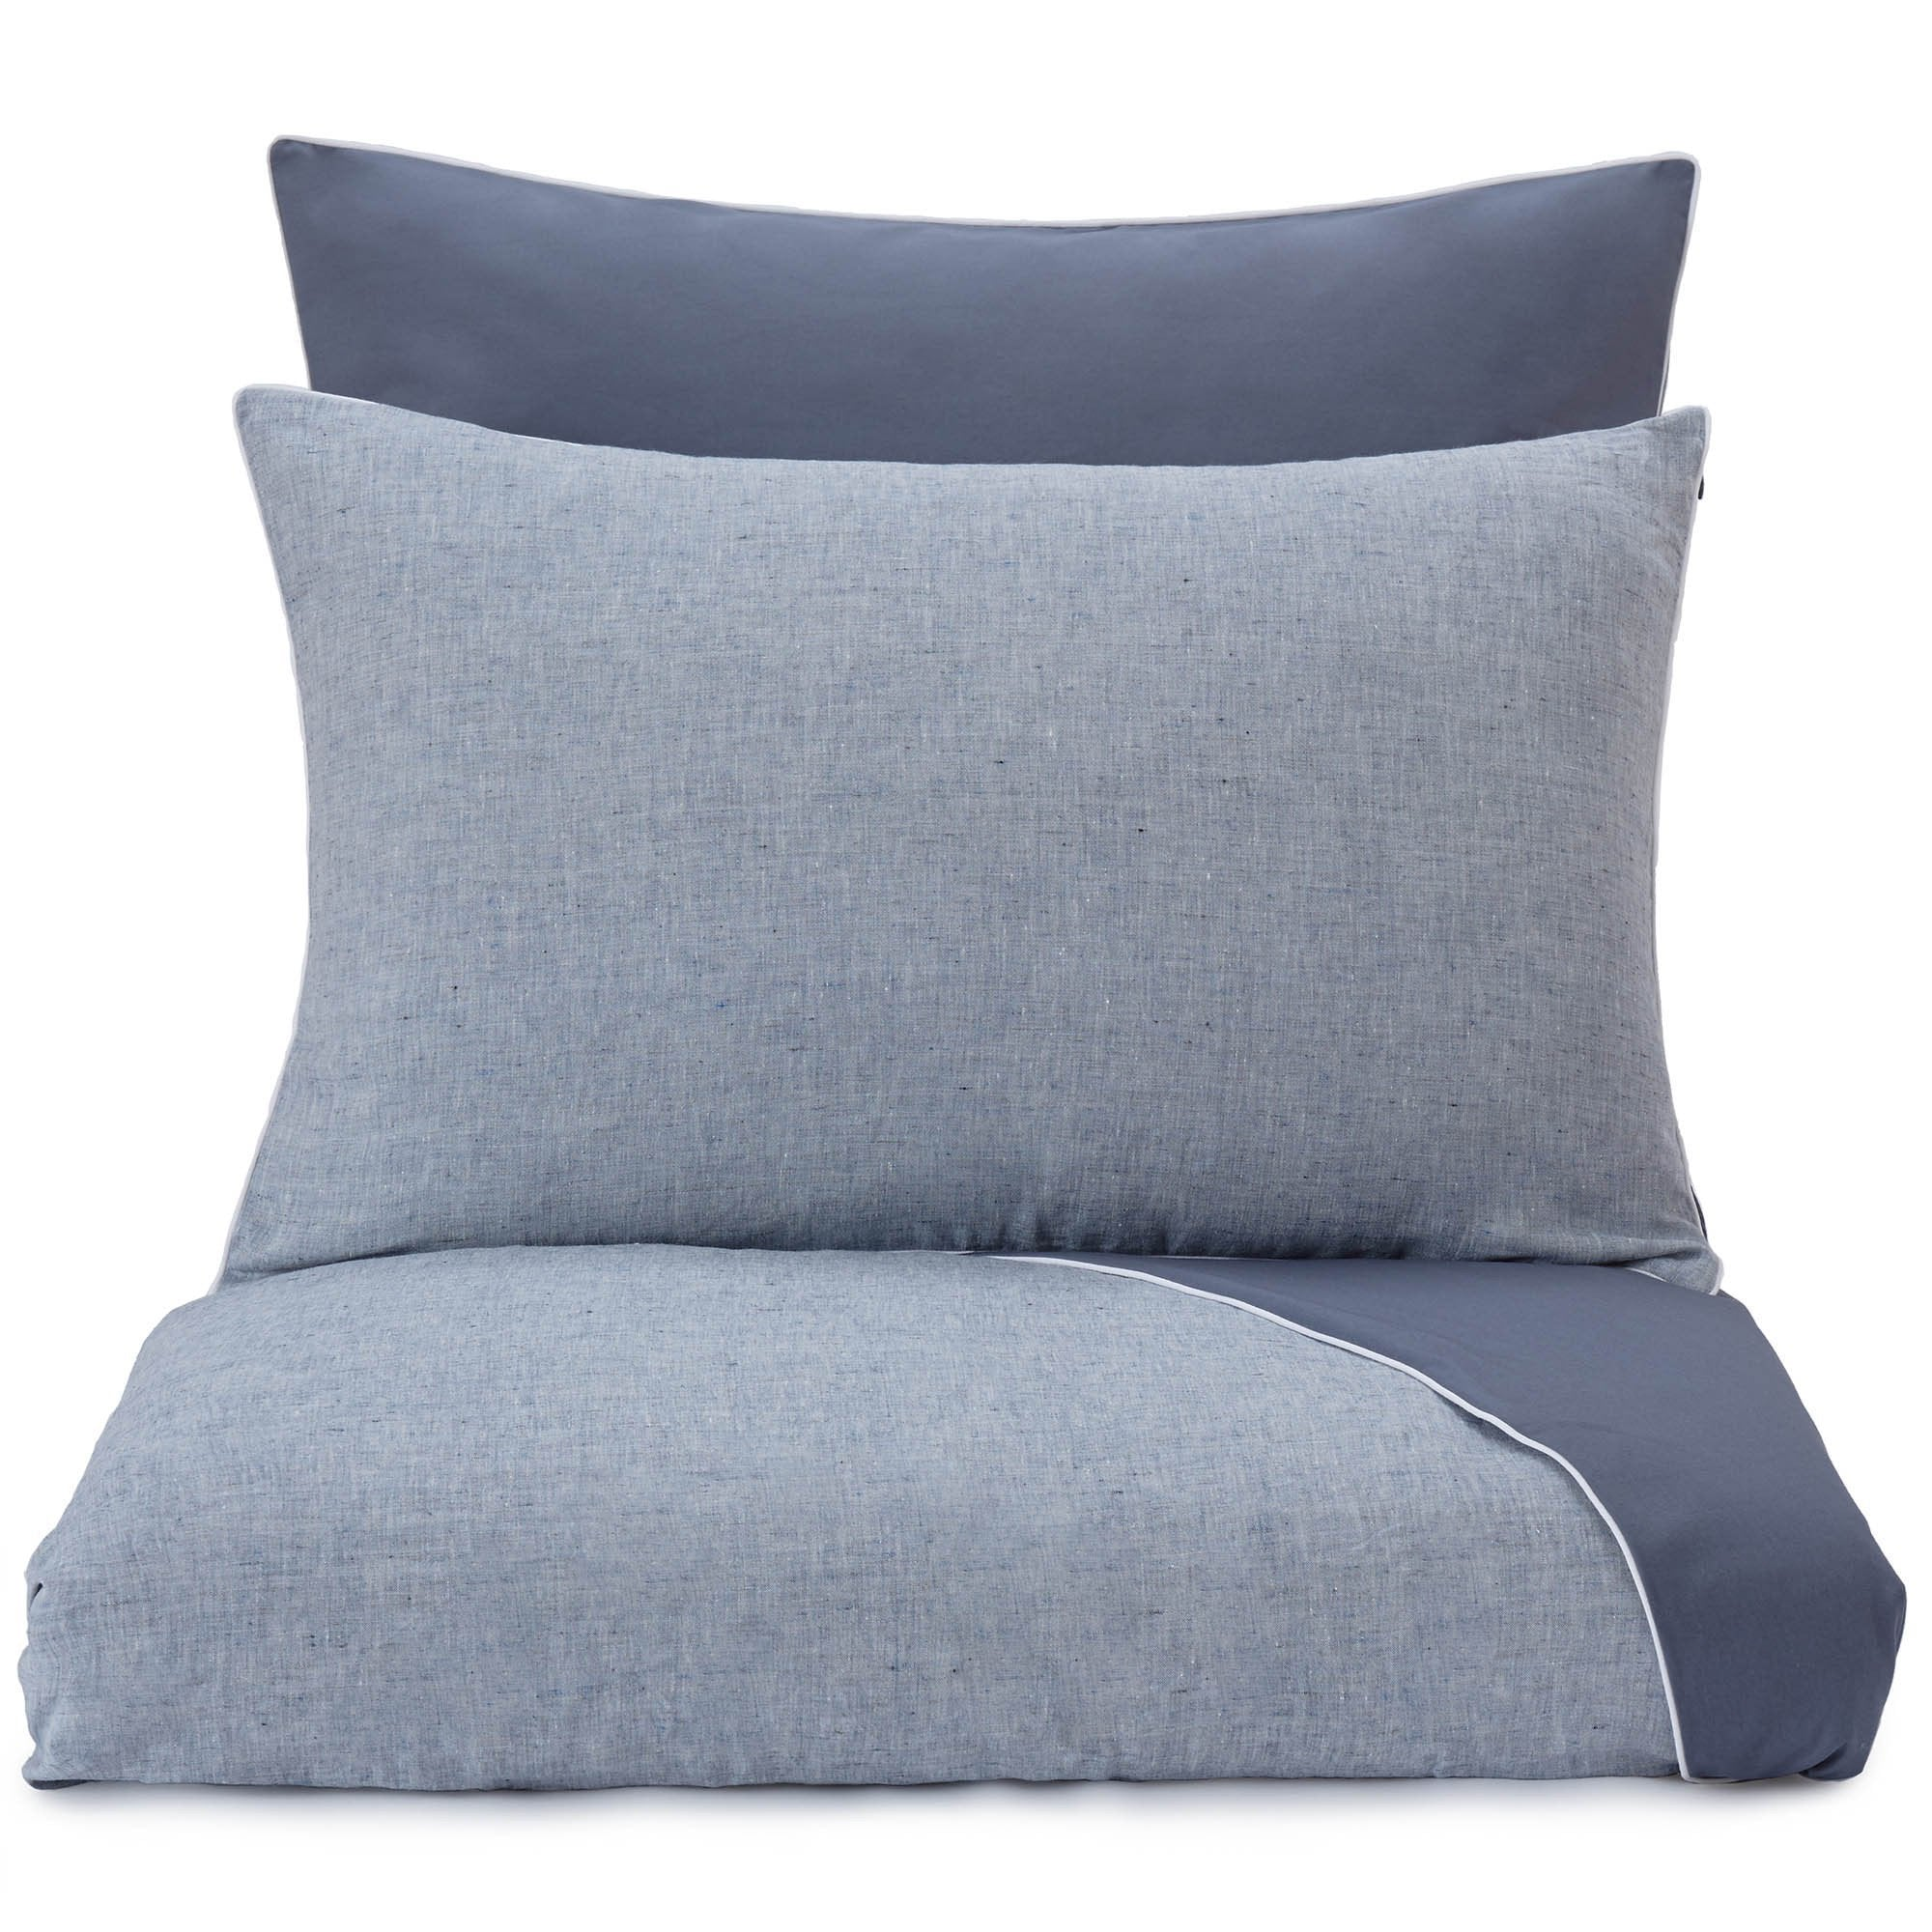 Sameiro duvet cover, dark grey blue & white, 100% linen & 100% organic cotton